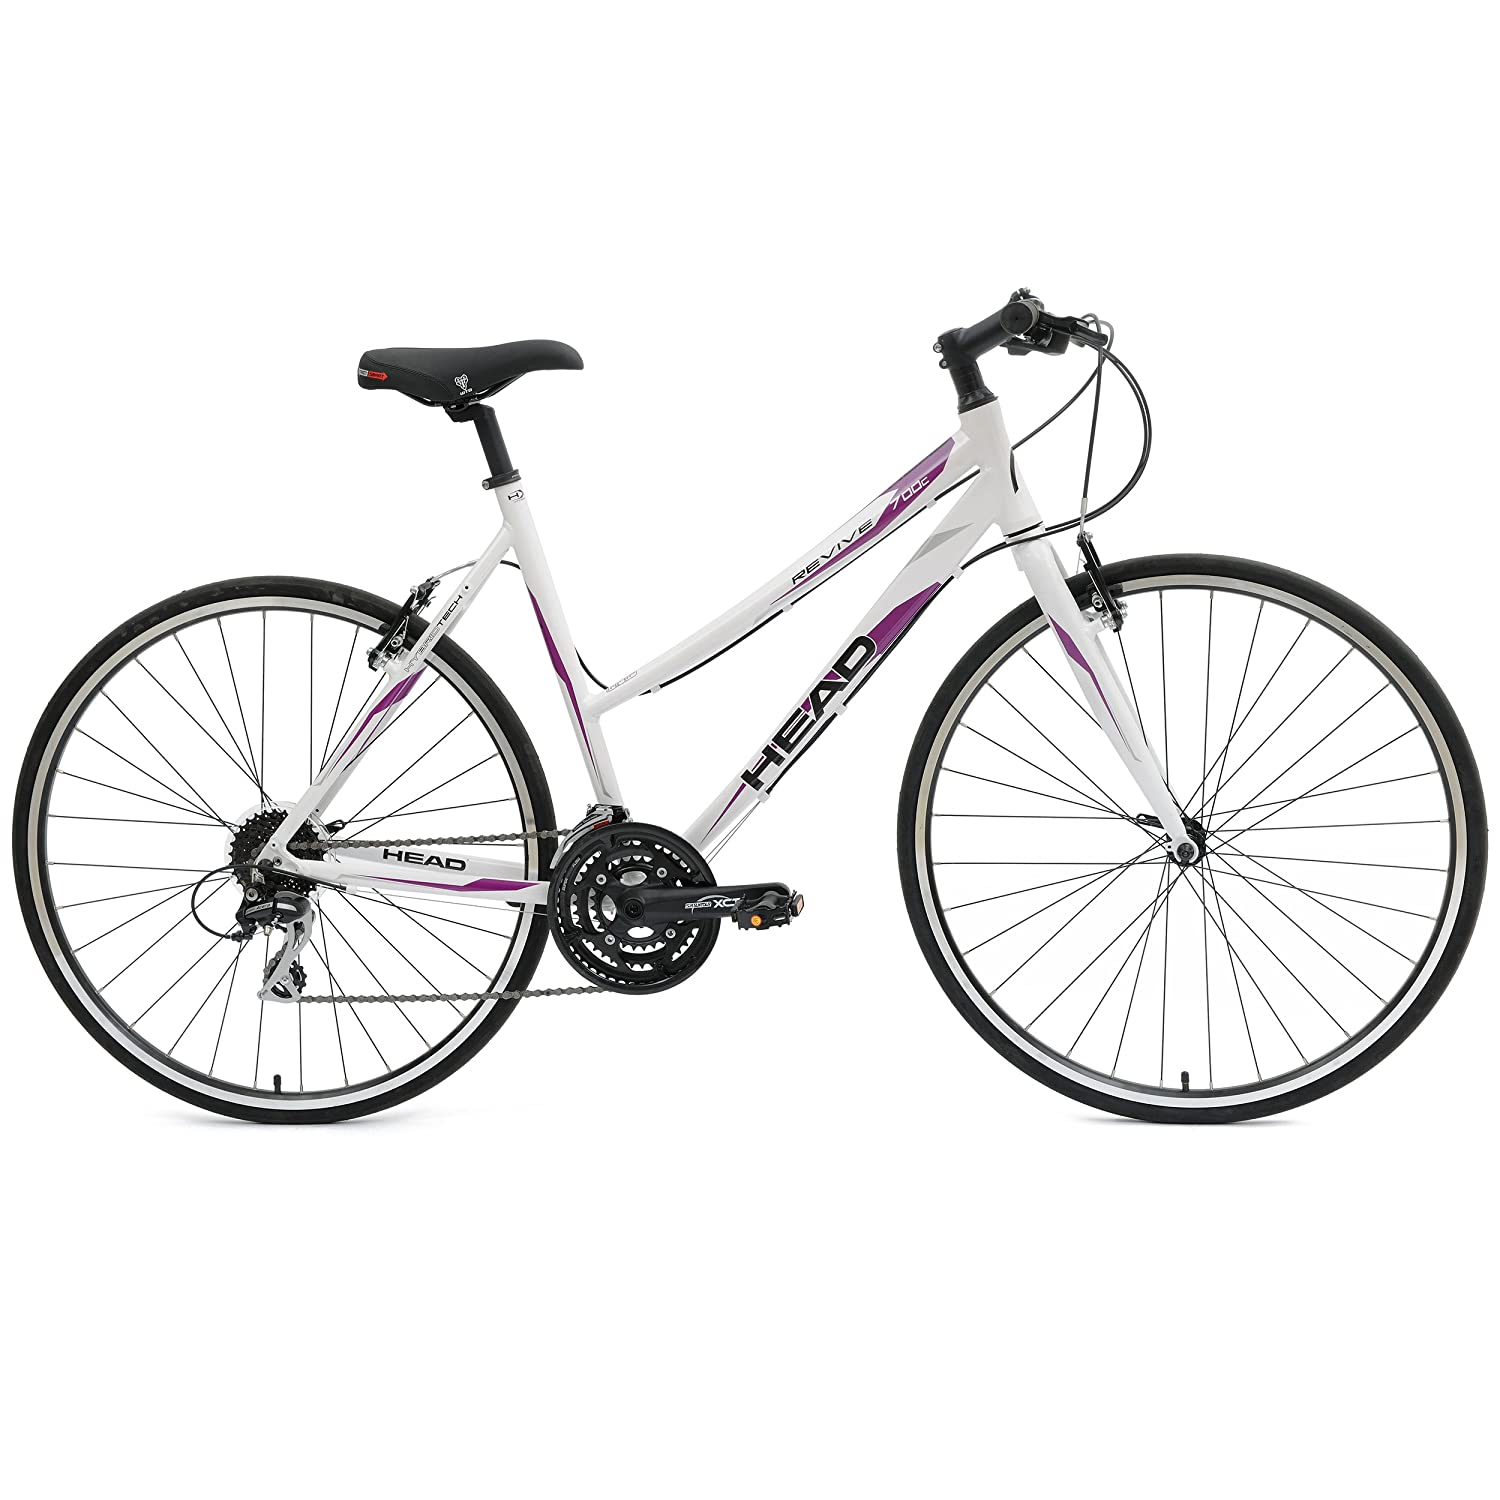 Amazon.com : Head Revive 700C Hybrid Road Bicycle : Sports & Outdoors